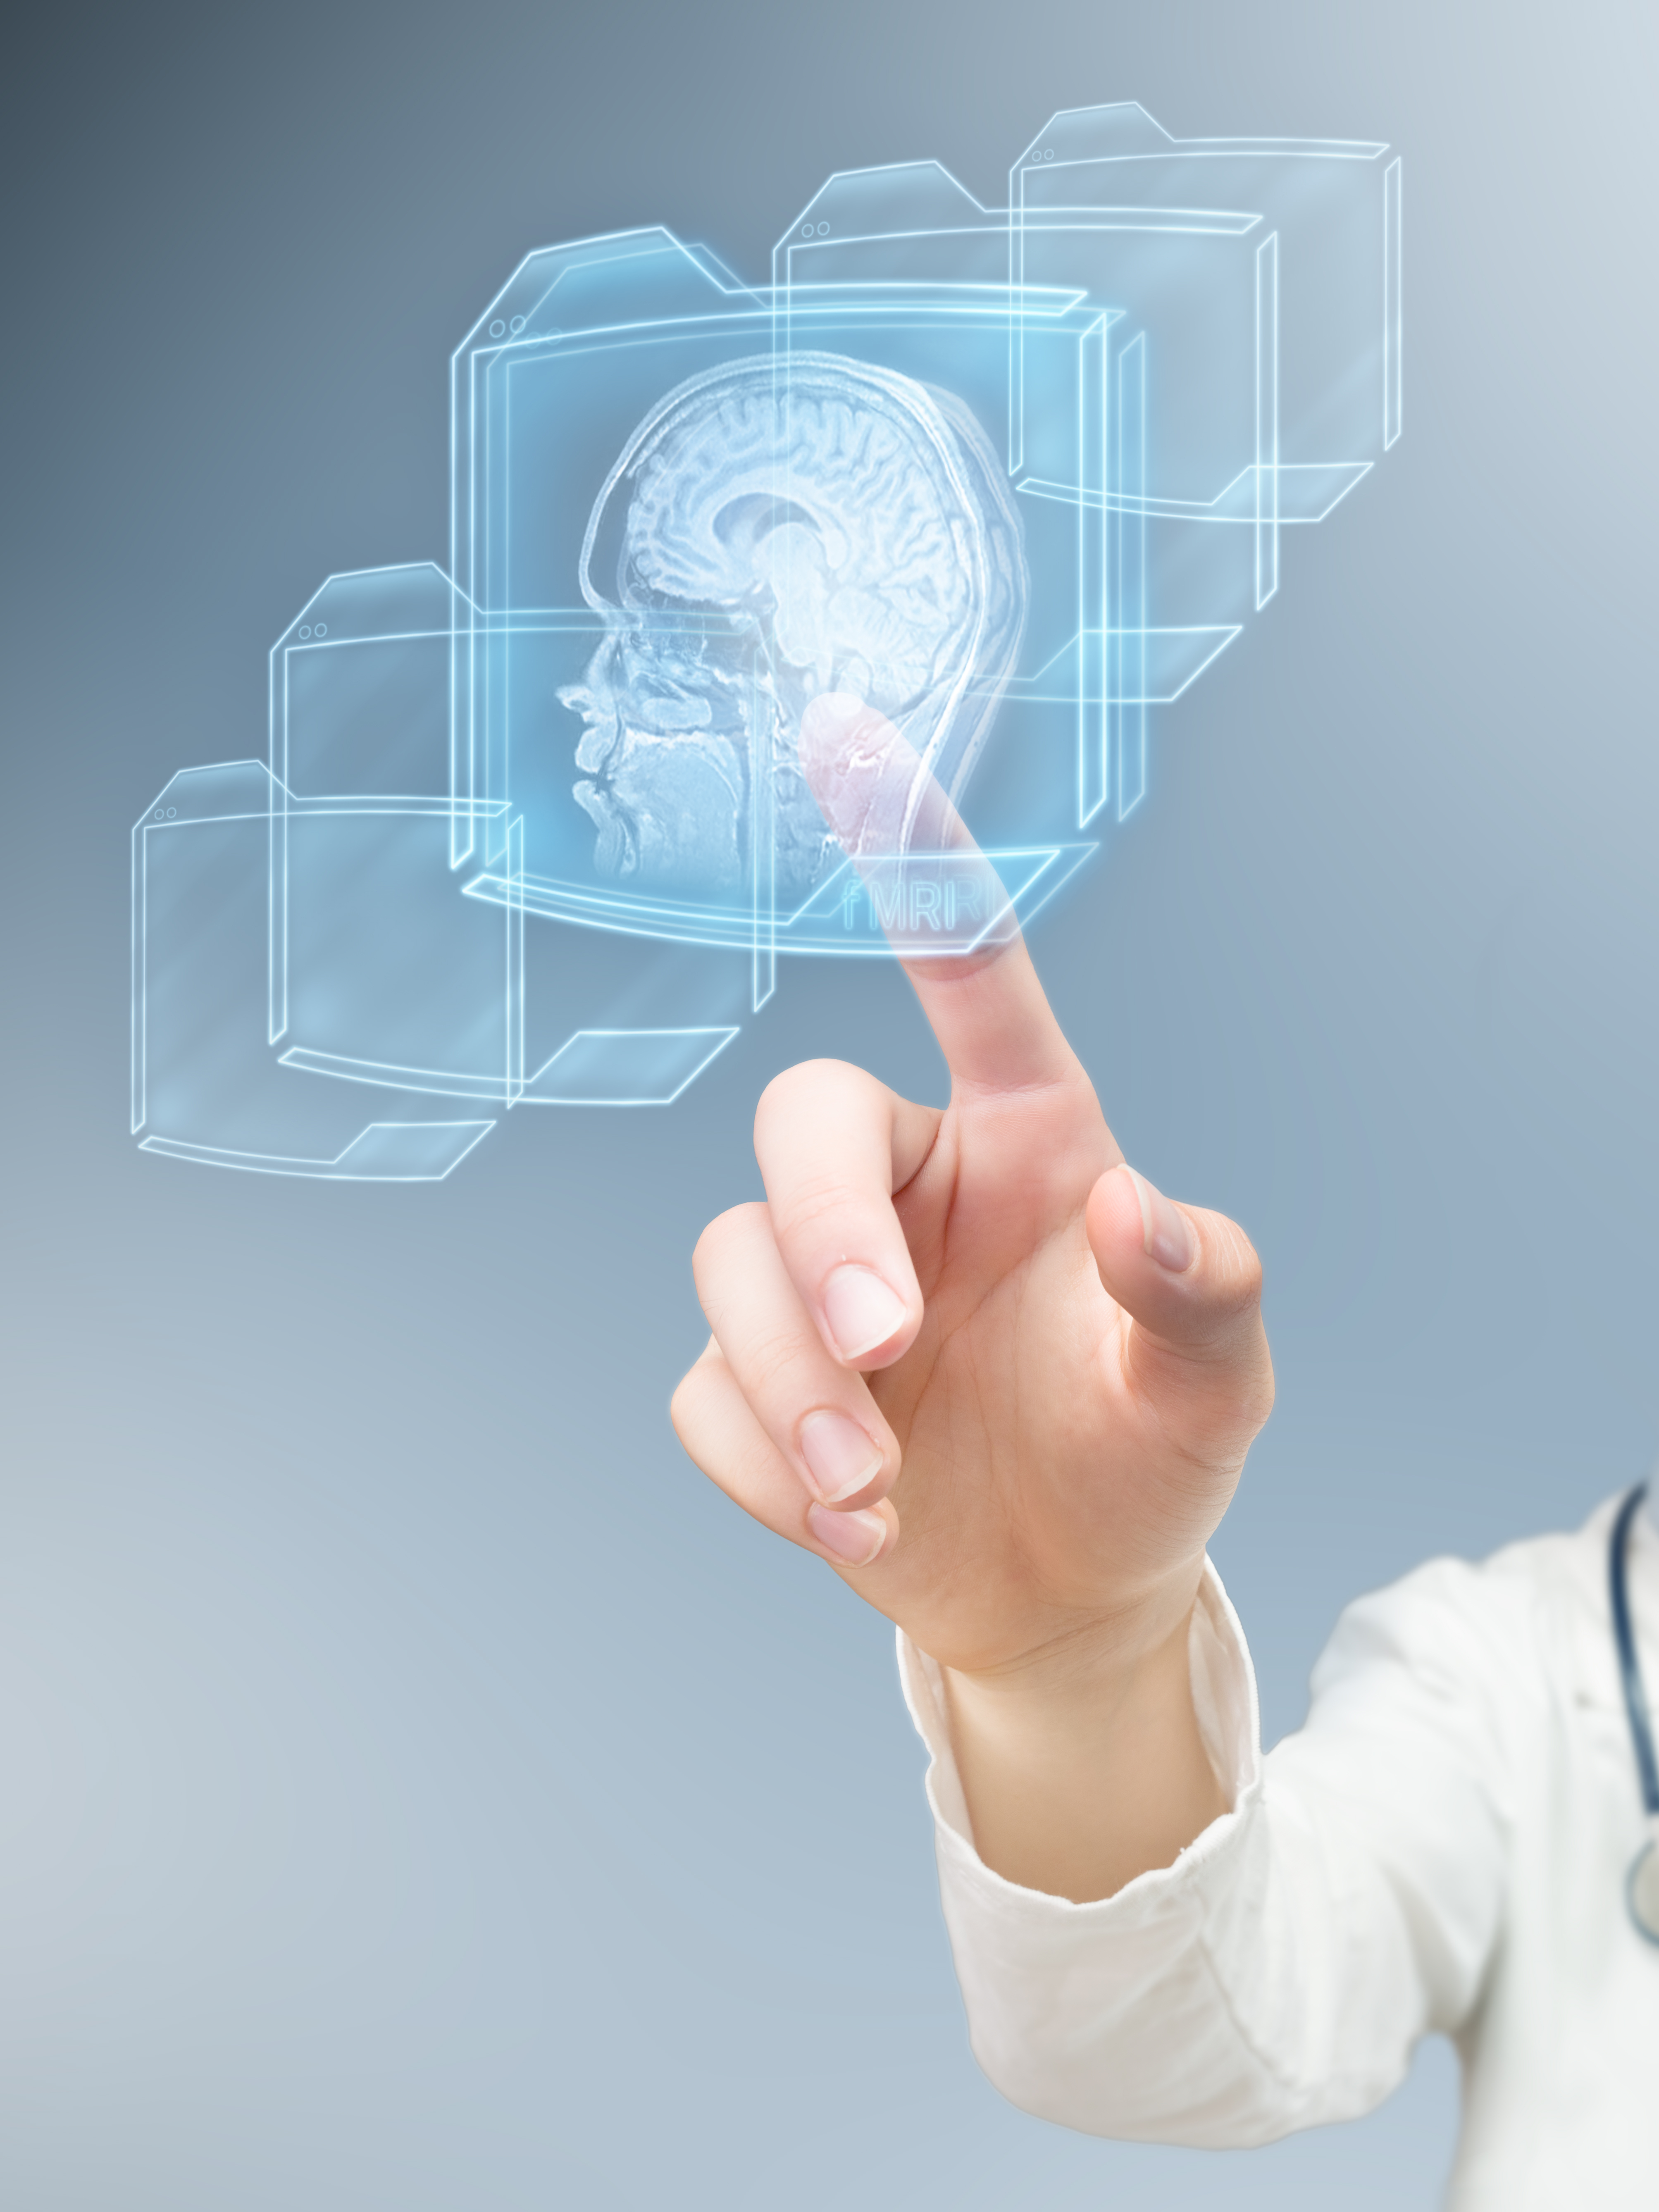 How Do You Empower the Brain to Boost Productivity at Both an Individual and Team Level?